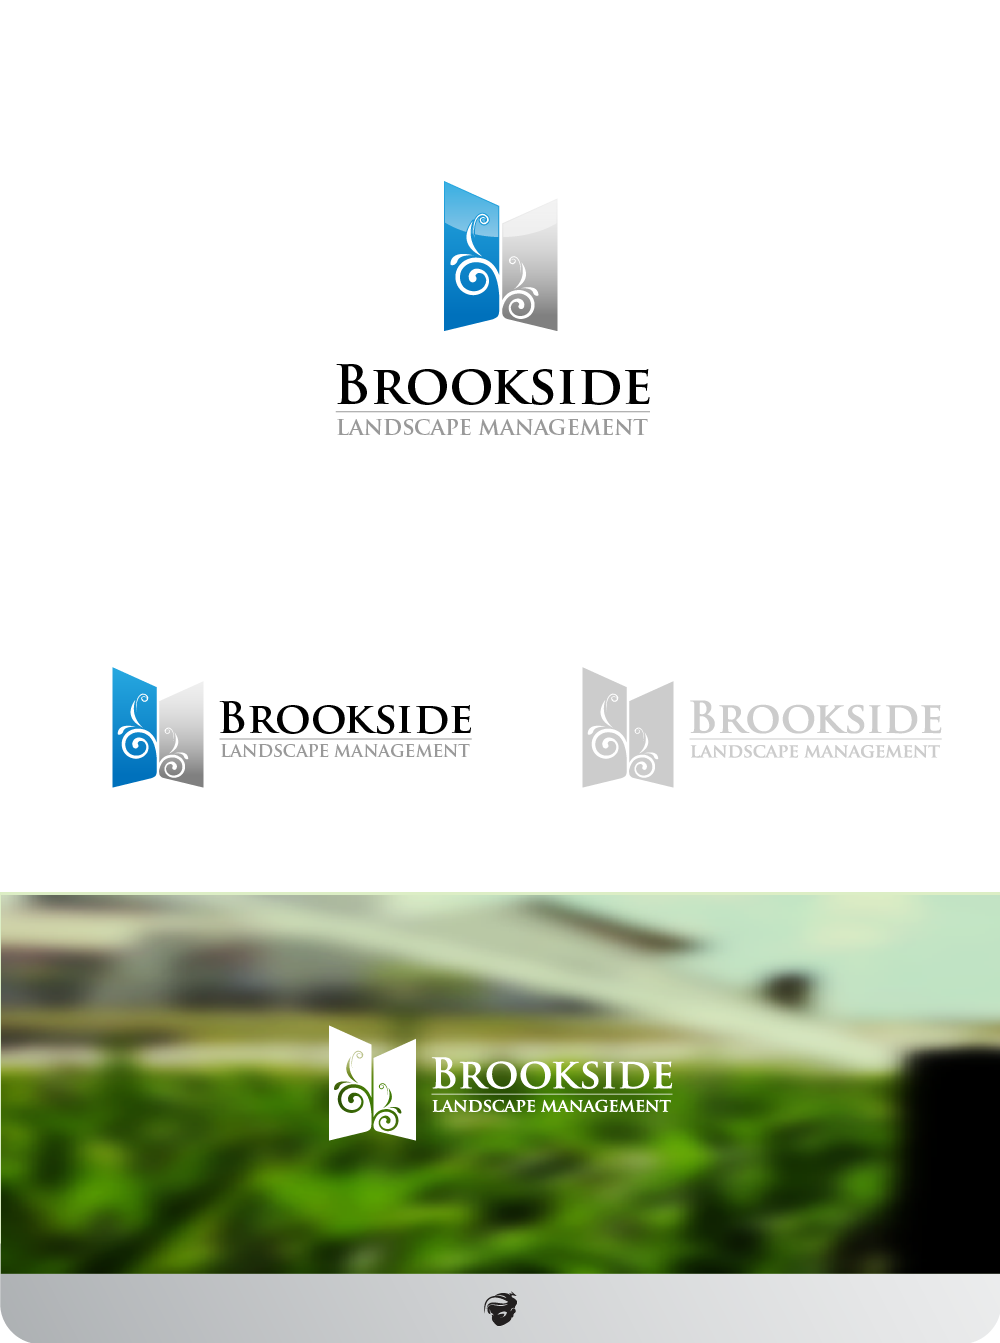 Logo Design by zesthar - Entry No. 171 in the Logo Design Contest New Logo Design for Brookside Landscape Management.